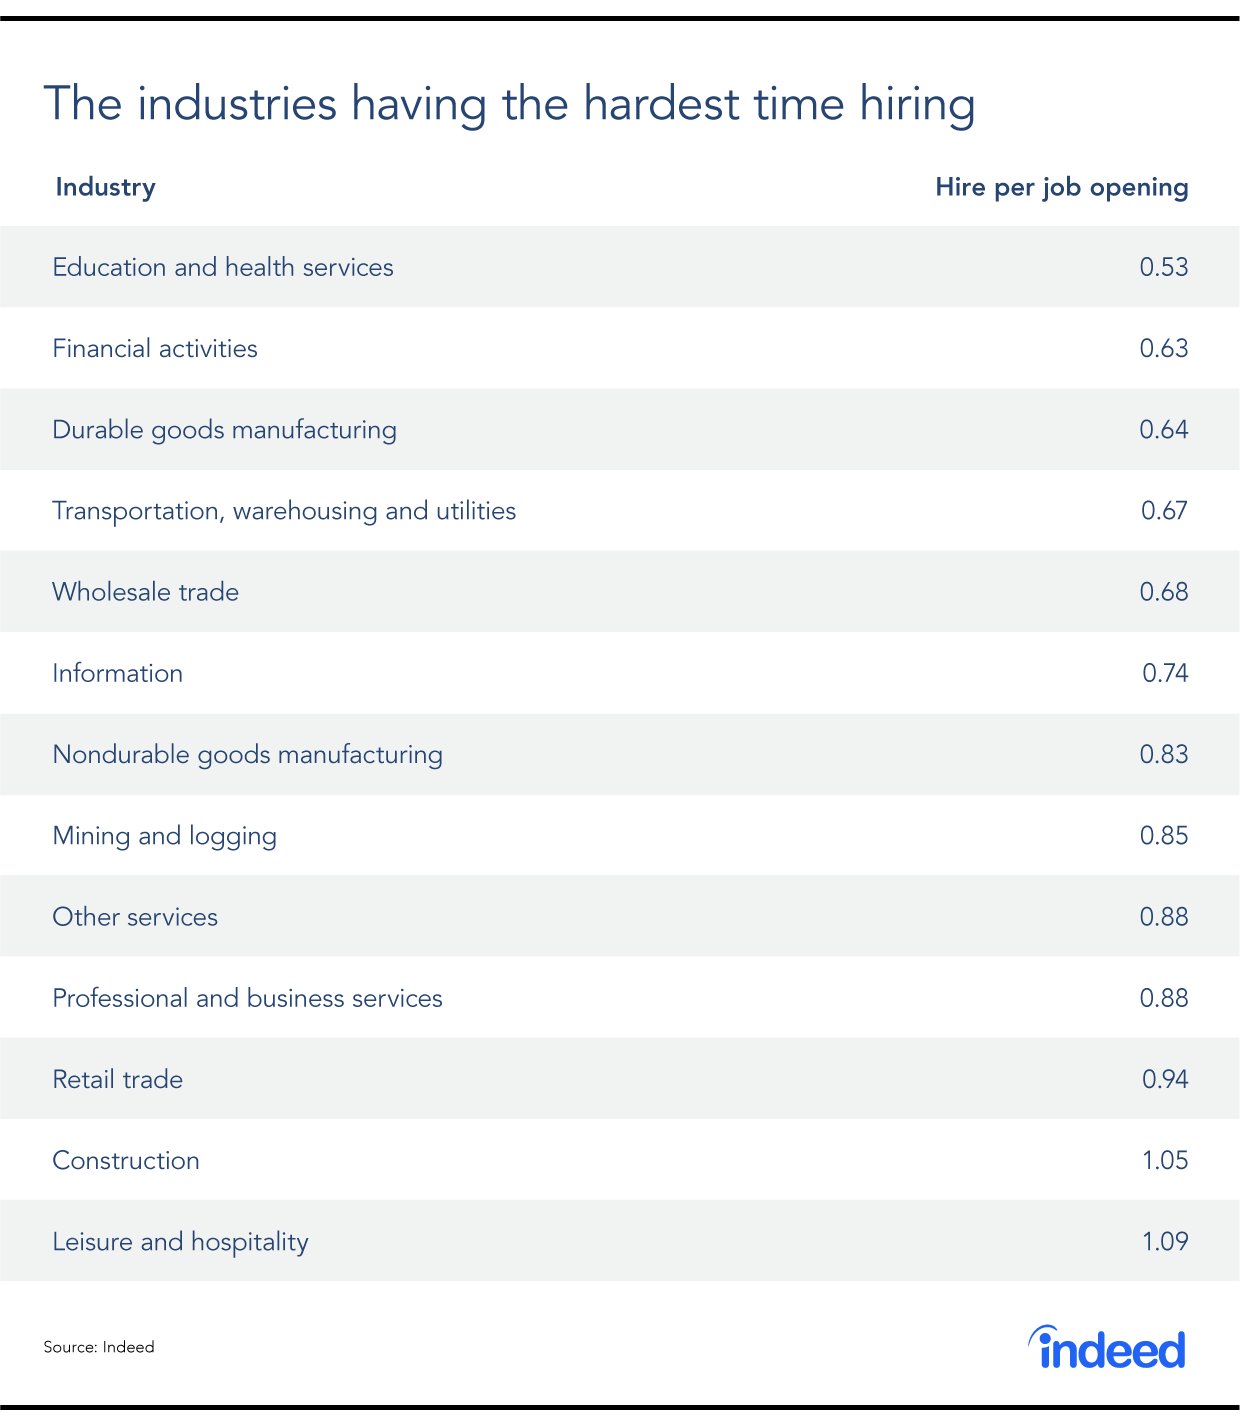 Table showing 13 separate industry sectors and the hires per job opening for each available job per month.